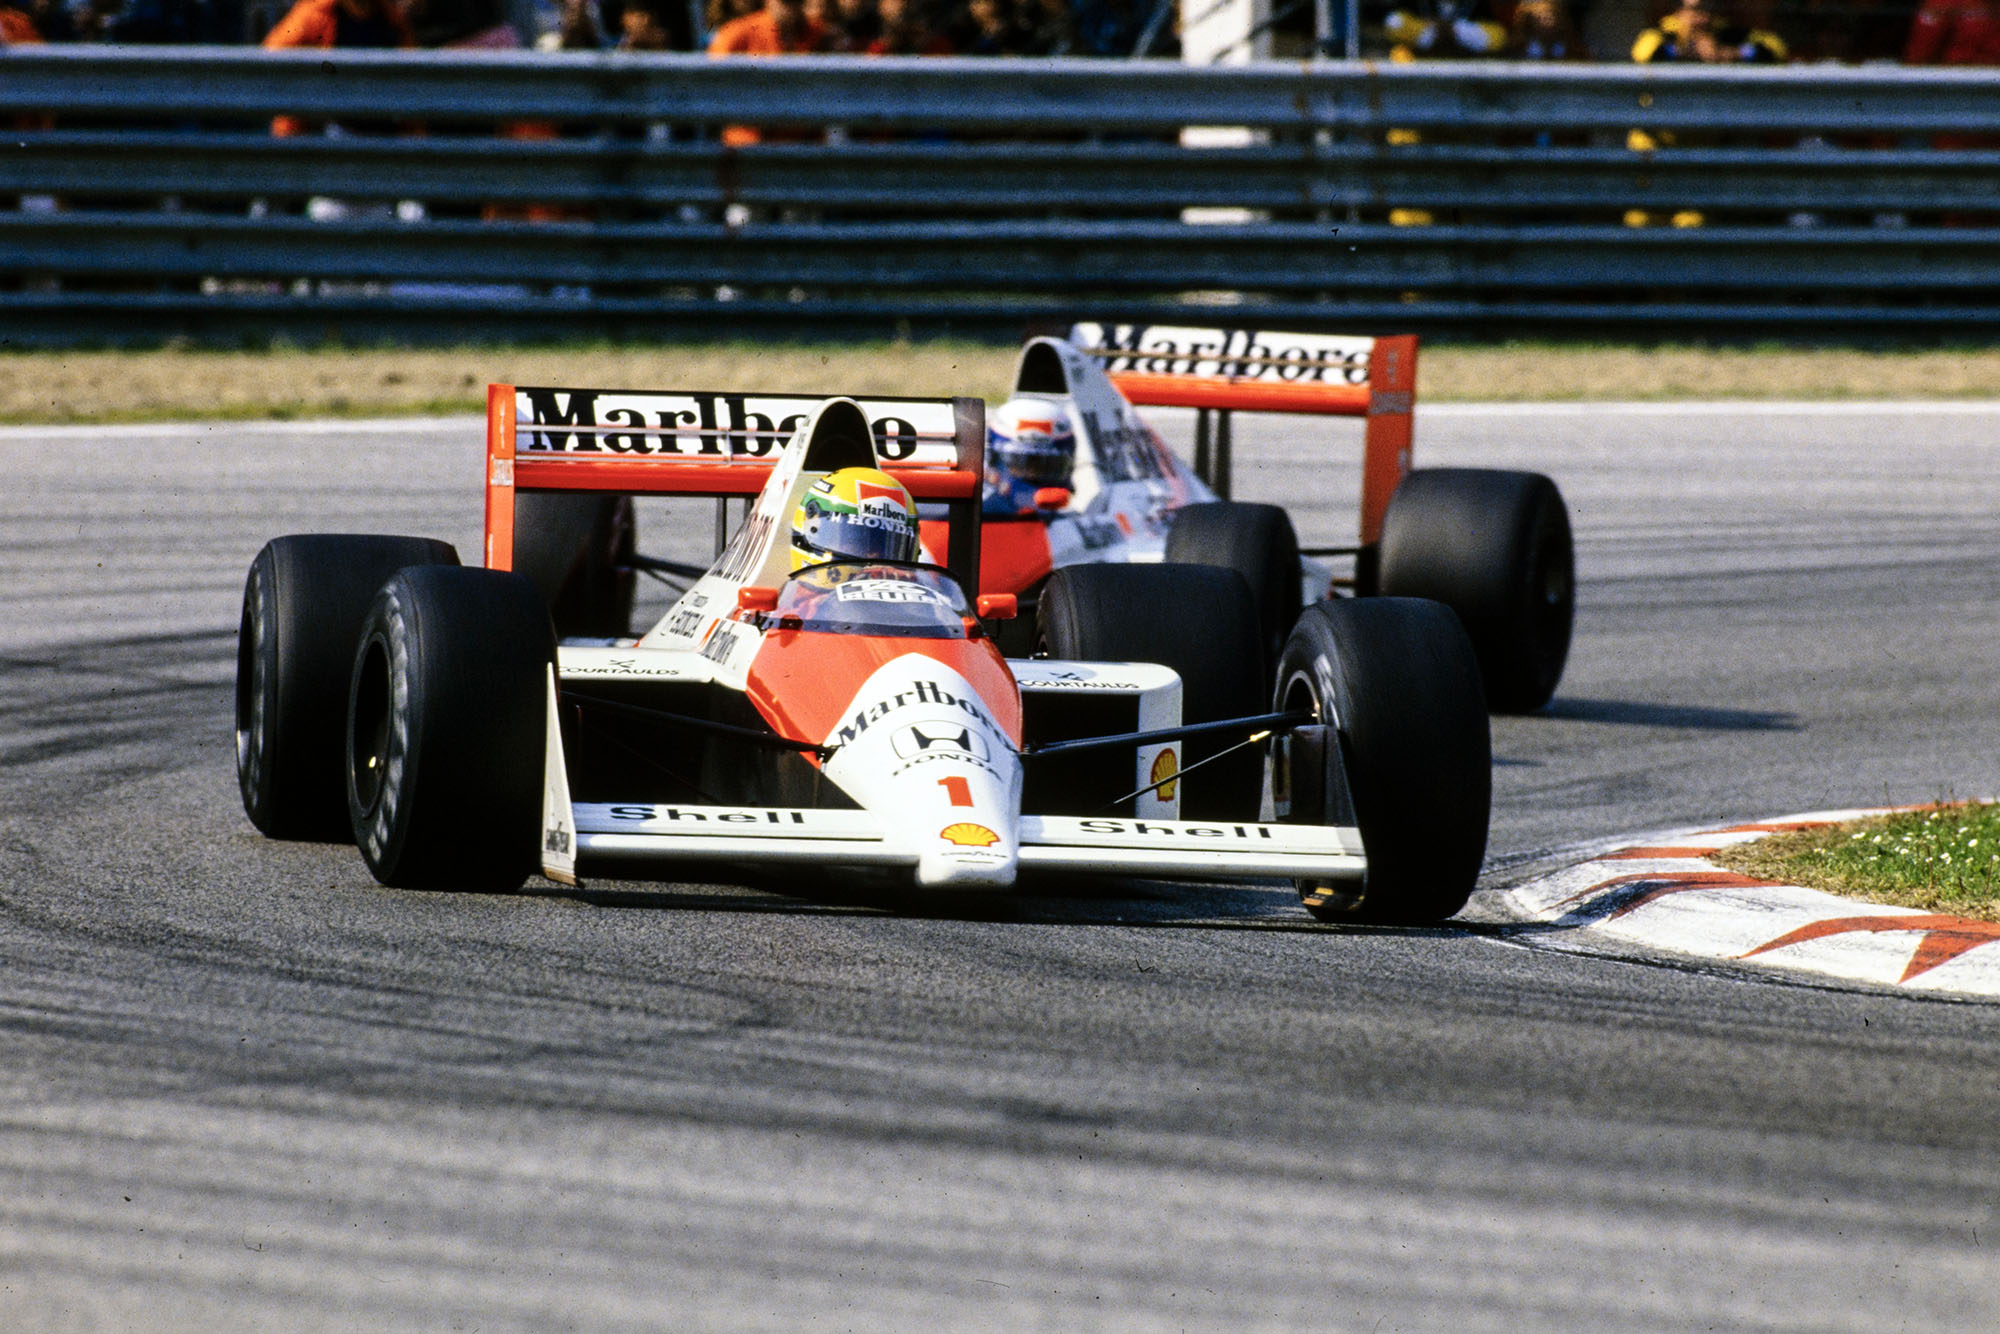 1989 San Marino GP feature